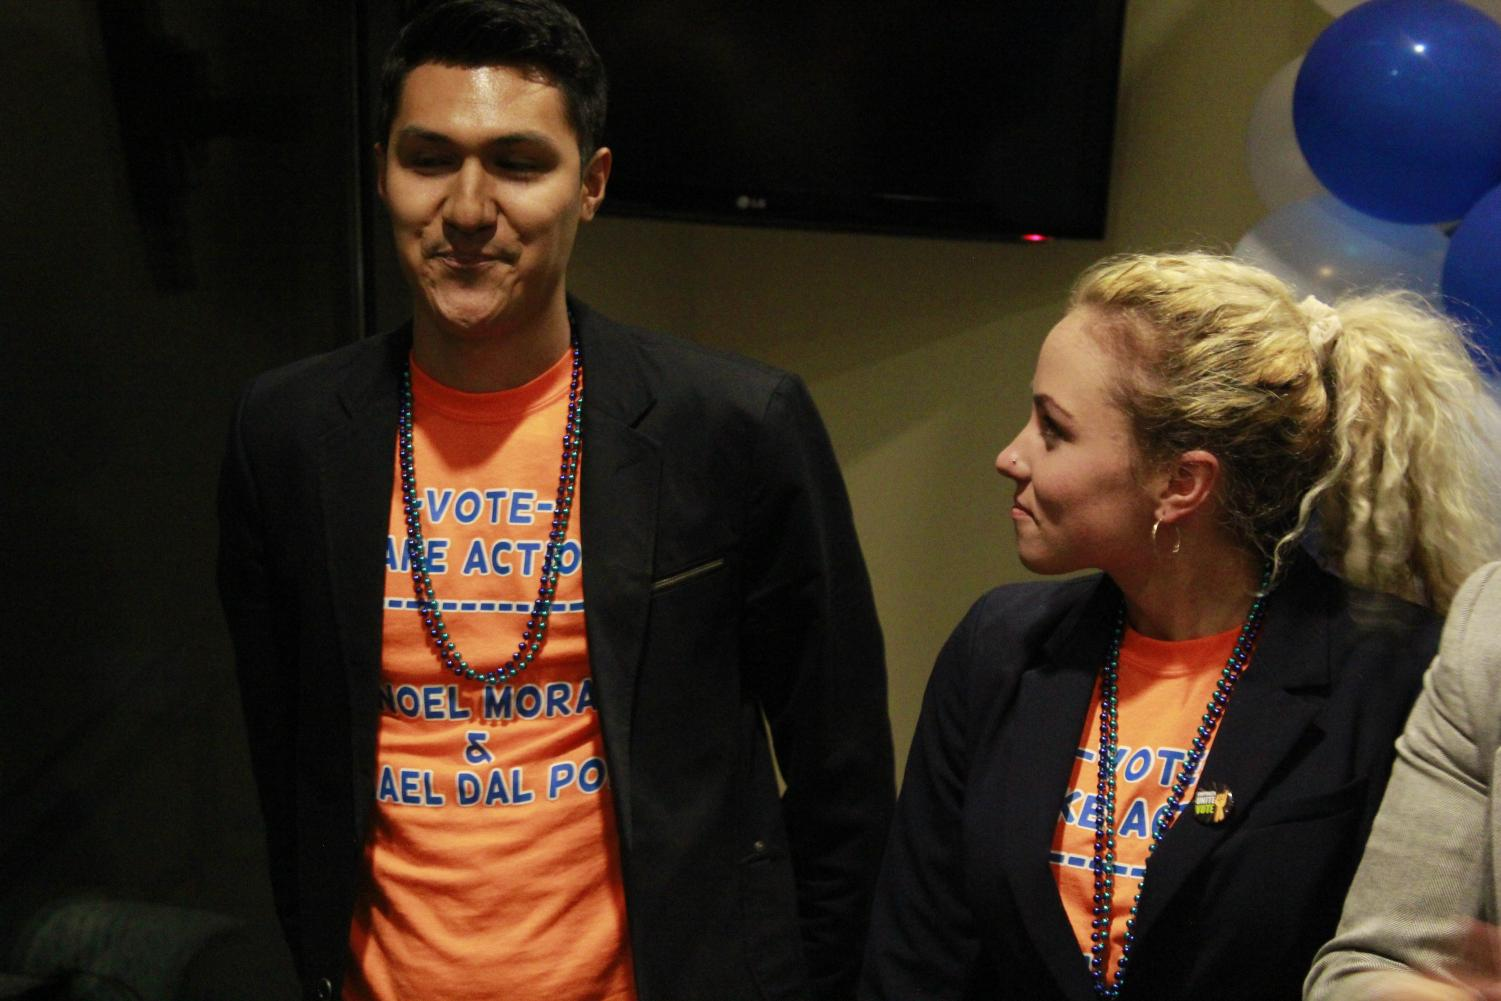 Noel Mora and Rachael Dal Porto as they hear the results of the ASI elections on April 11, 2018, at the elections party. The president's ticket, consisting of the two candidates, ran unopposed for the president and executive vice-president positions.